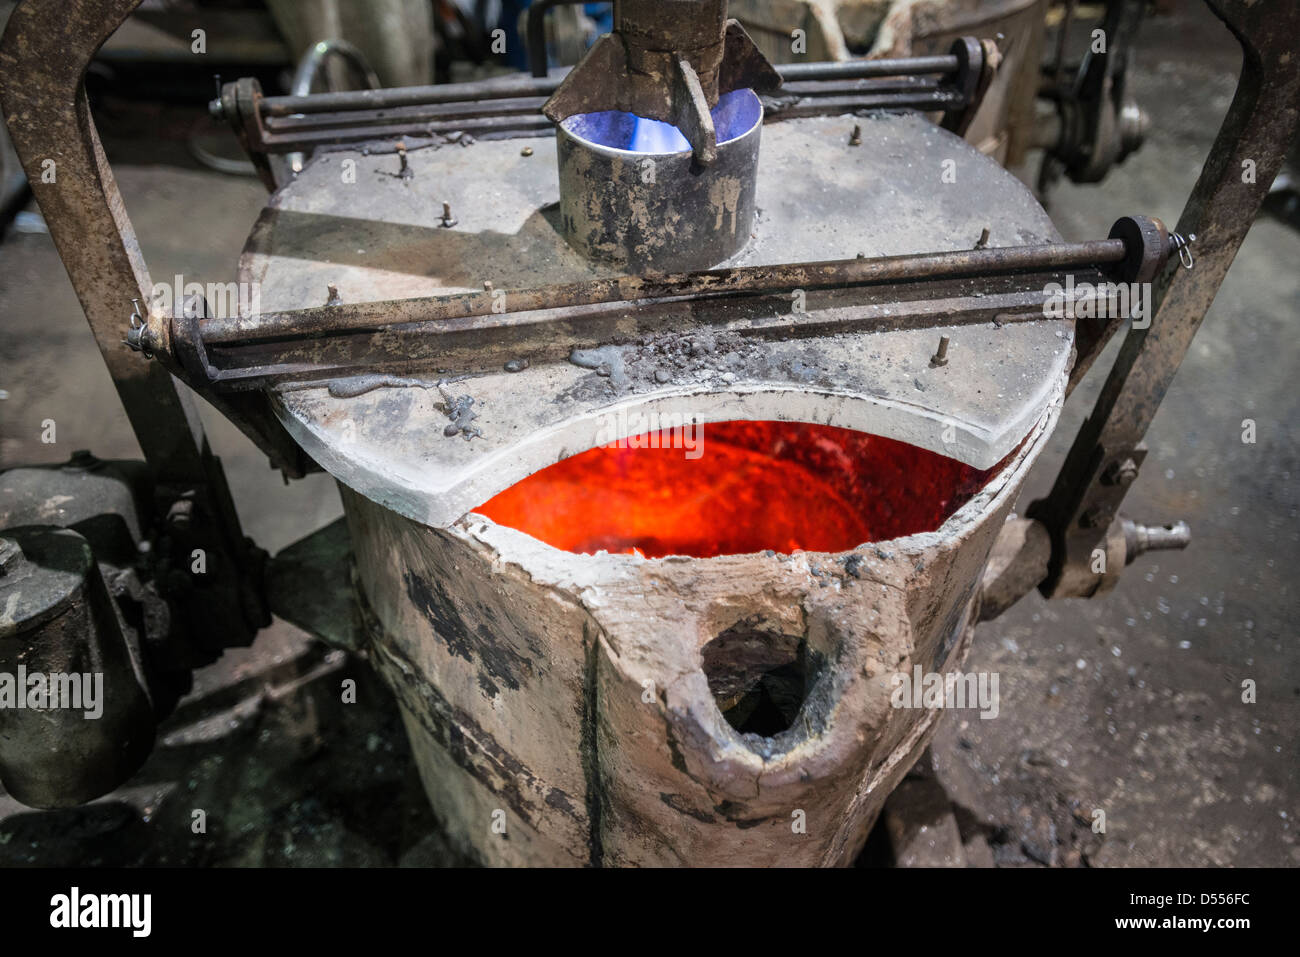 Heated metal flask in foundry - Stock Image